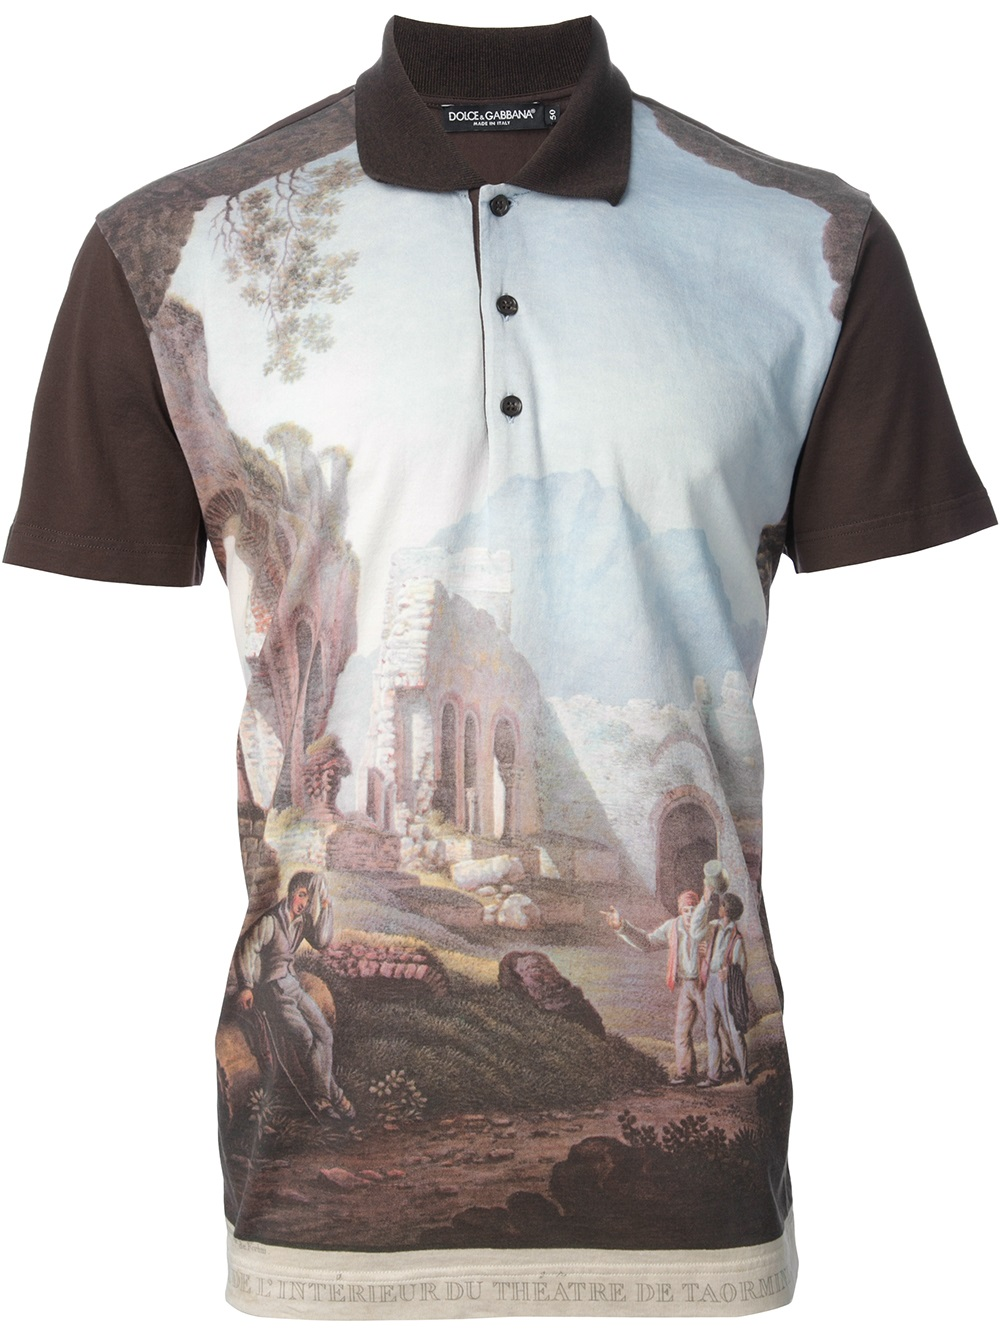 Dolce-gabbana-graphic-print-shirt-